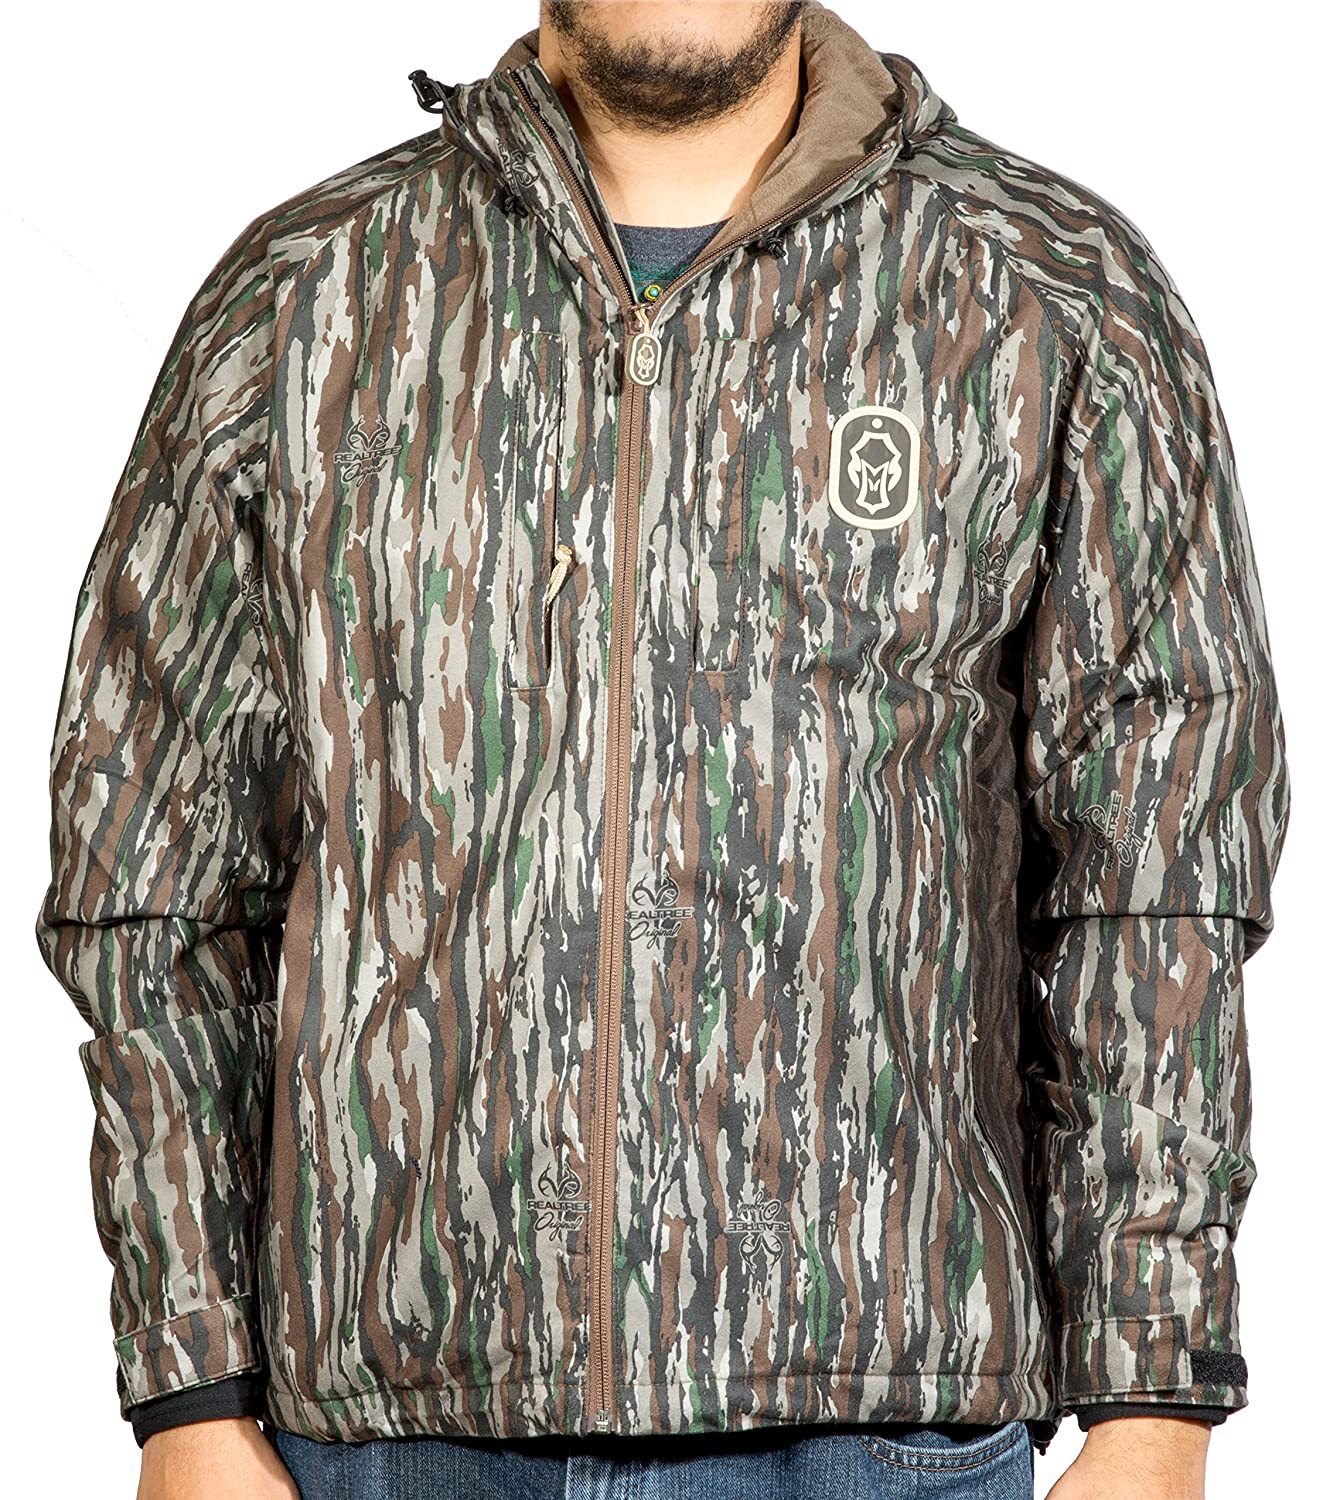 ハードコアブランドSeason OpenerフルZipジャケット B078JD2S47 Medium|Realtree Original Realtree Original Medium